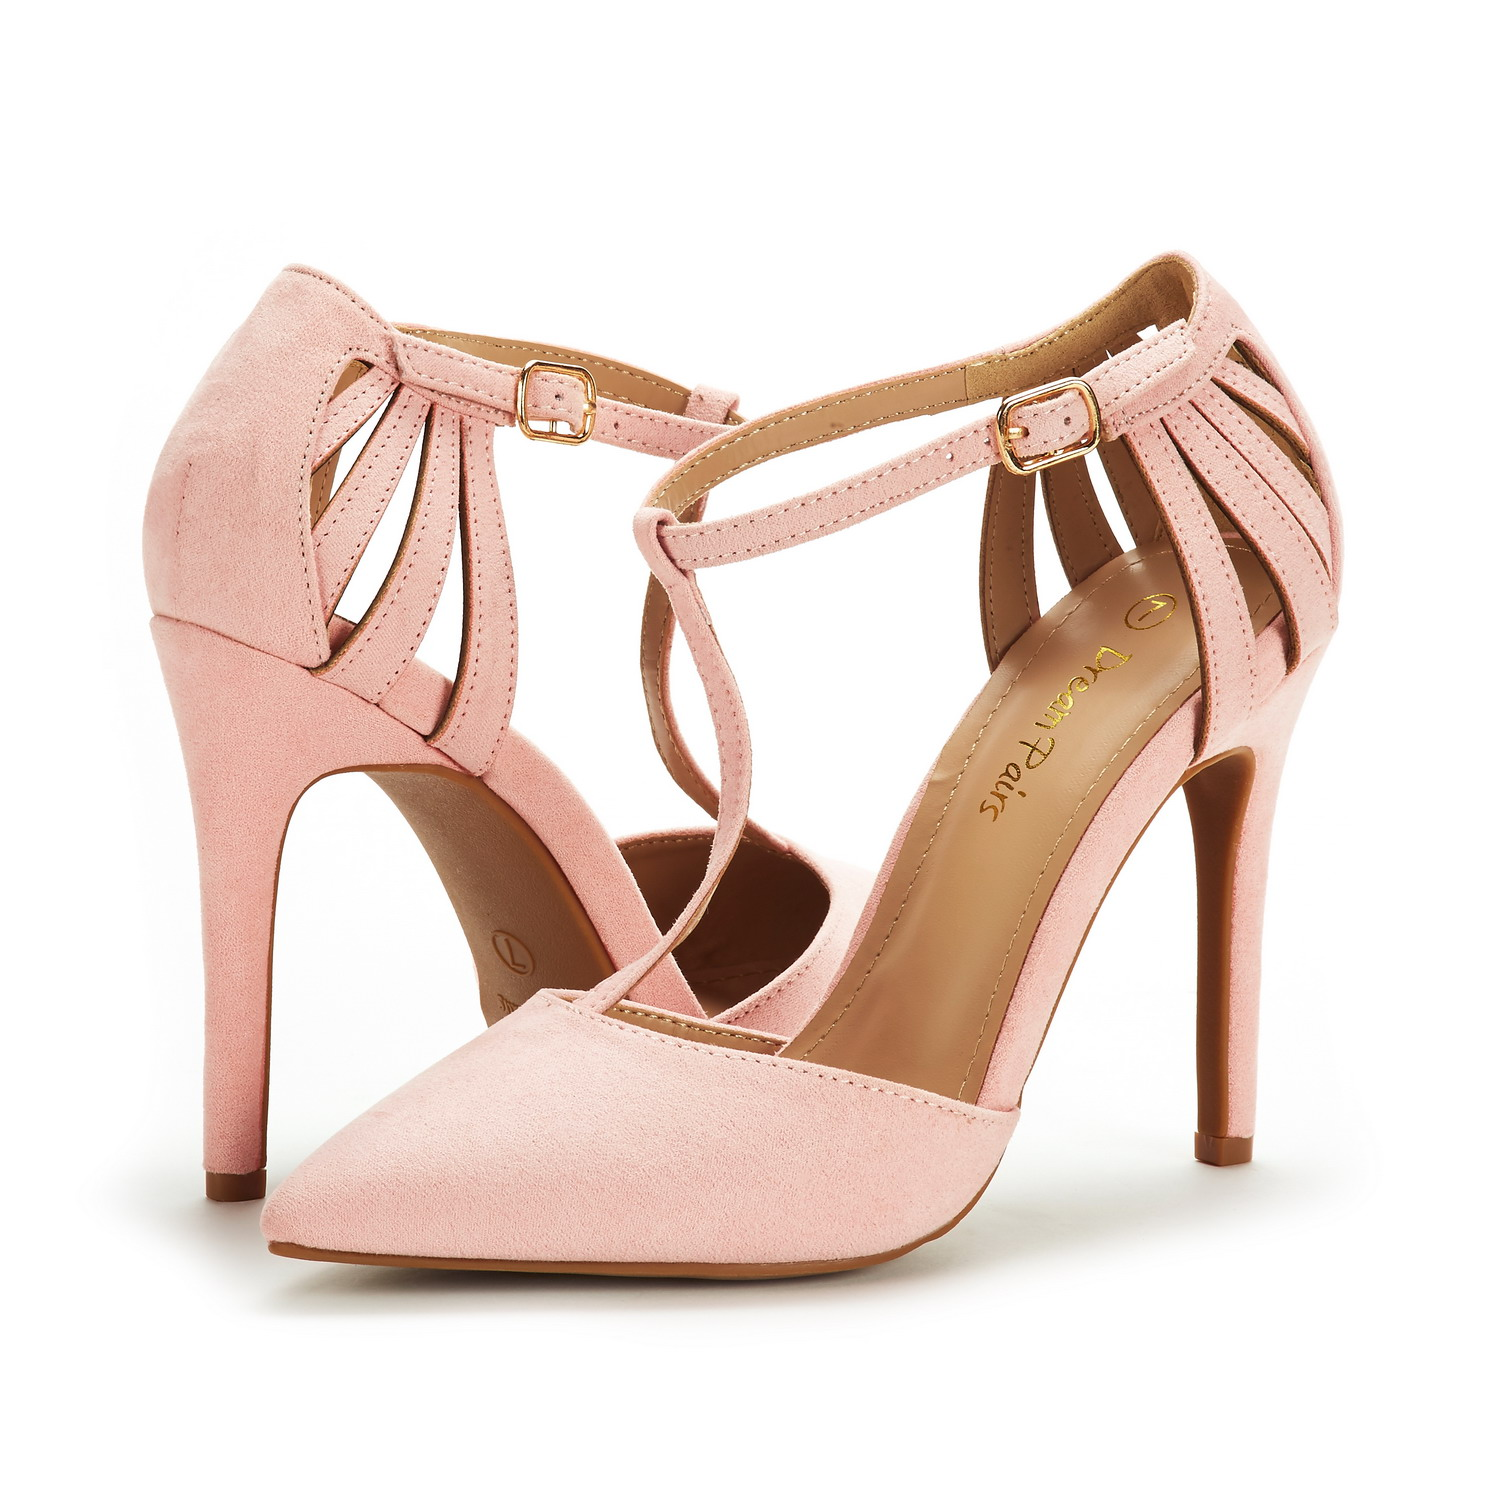 d9666fcbd713e Details about DREAM PAIRS Women Oppointed-Mary Dress High Heel Pointed Toe  Wedding Pumps Shoes